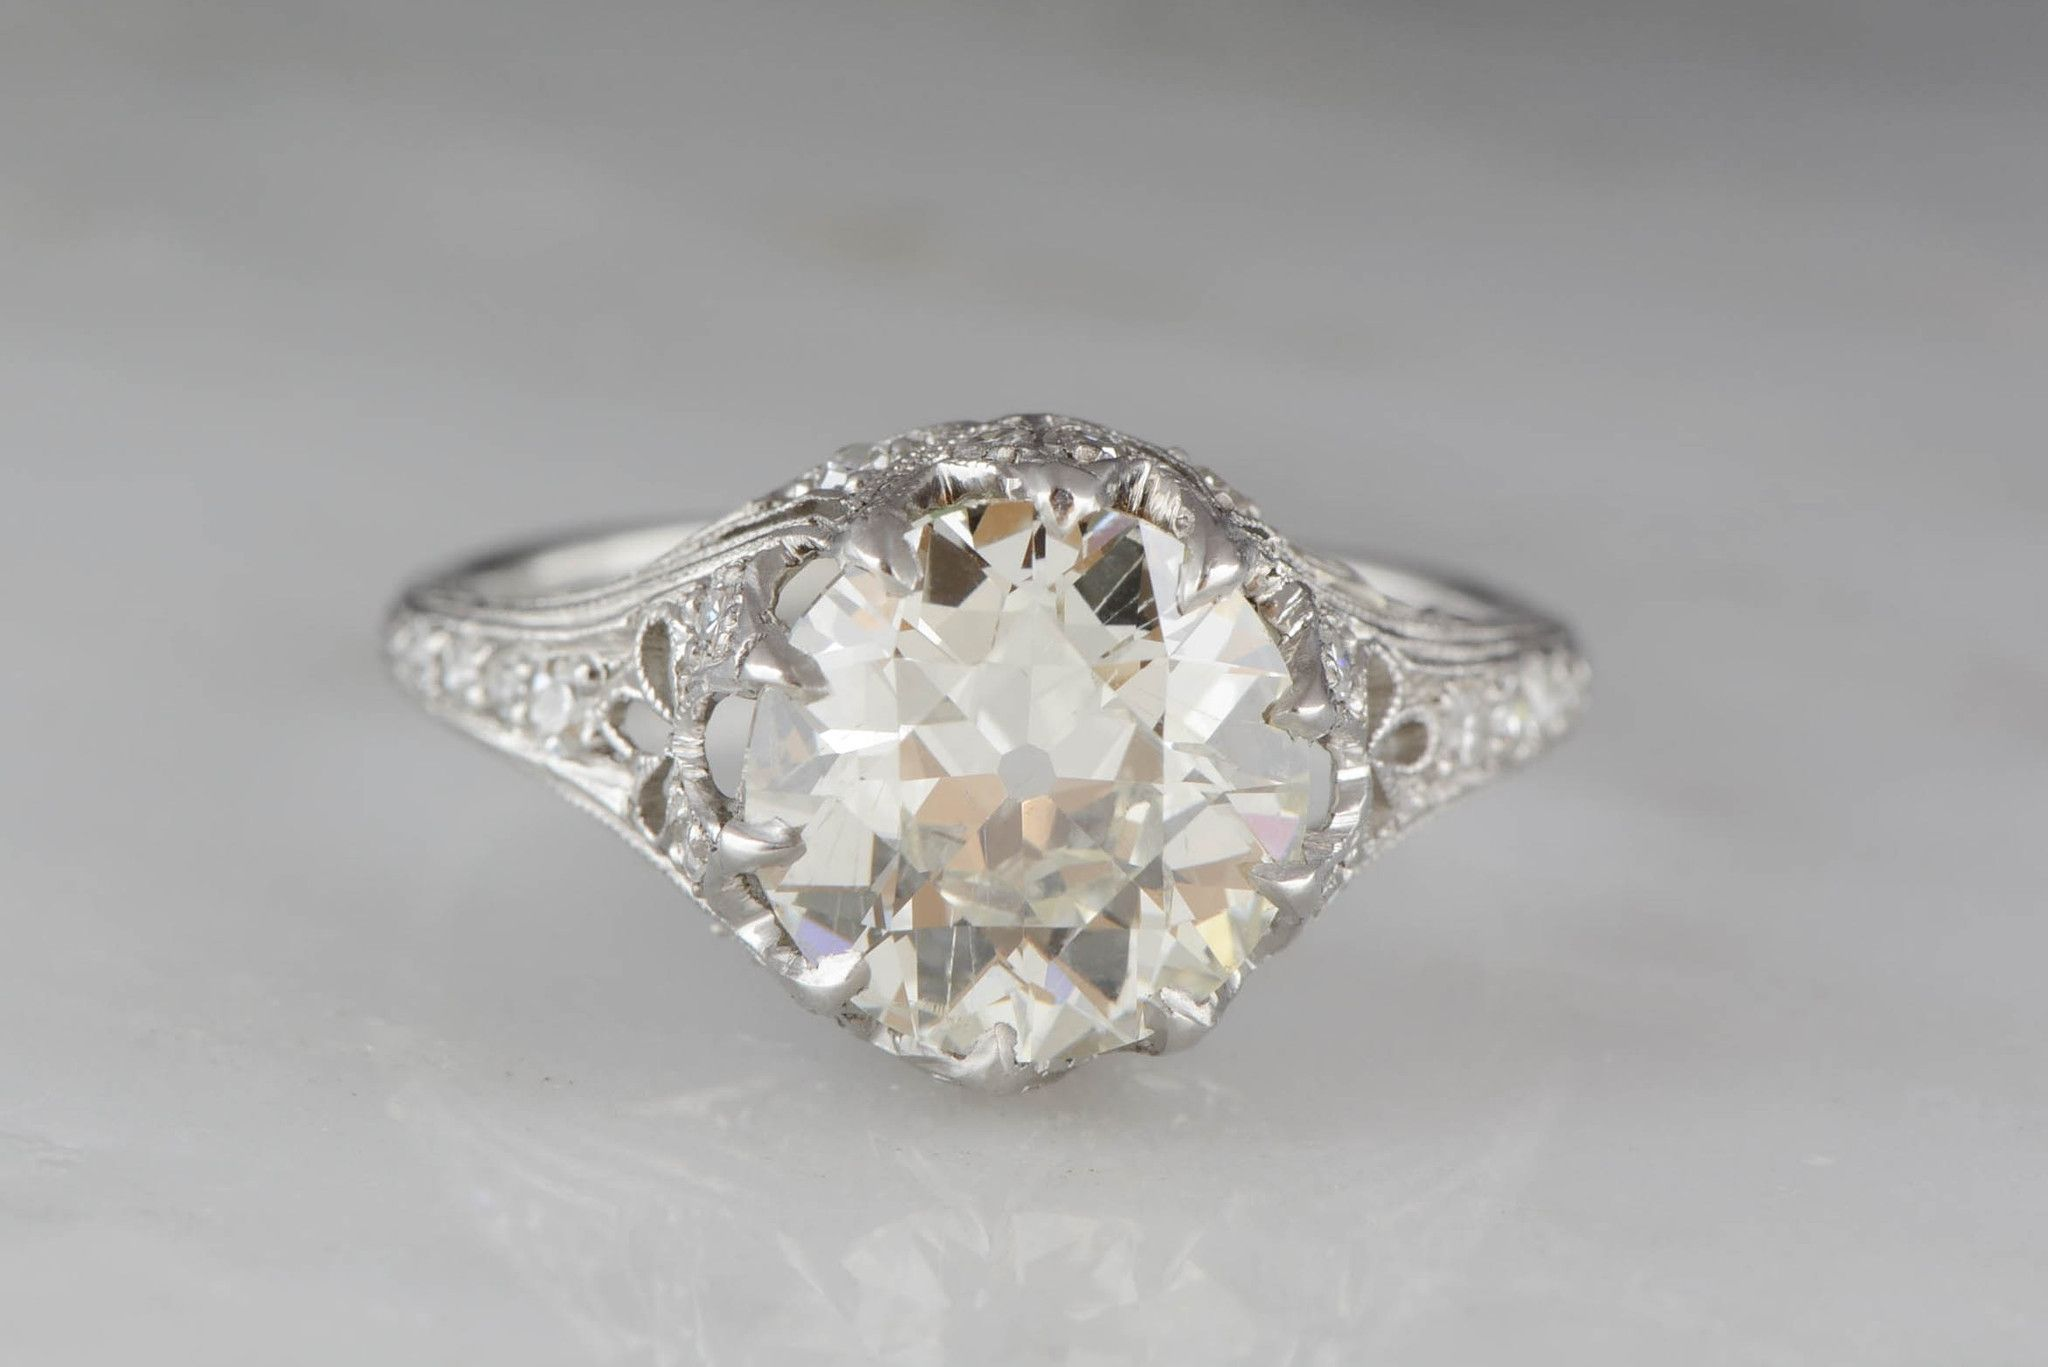 2.55 Carat Old European Cut Diamond High-Edwardian Platinum Engagement Ring with .50ctw Diamond Accents from Pebble and Polish